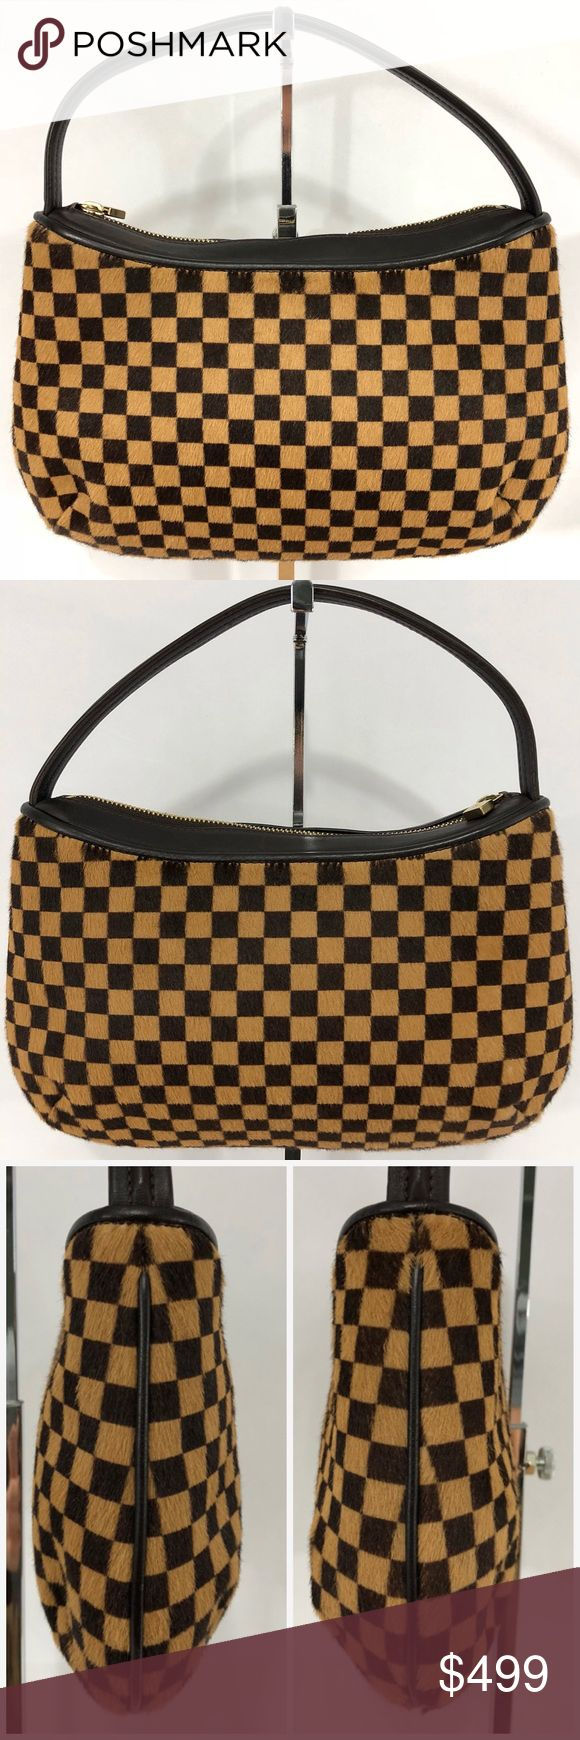 Authentic Damier Sauvage Tiger Stunning damier ebene in a soft pony hair. The only flaw is small bald patch not easily seen by naked eye. Please see photo. Approximate dimensions are 10 inches long 6.75 inches tall with strap being 11 inches. Guaranteed authenticity by Poshmark's authenticity policy. No trades please. Louis Vuitton Bags Satchels